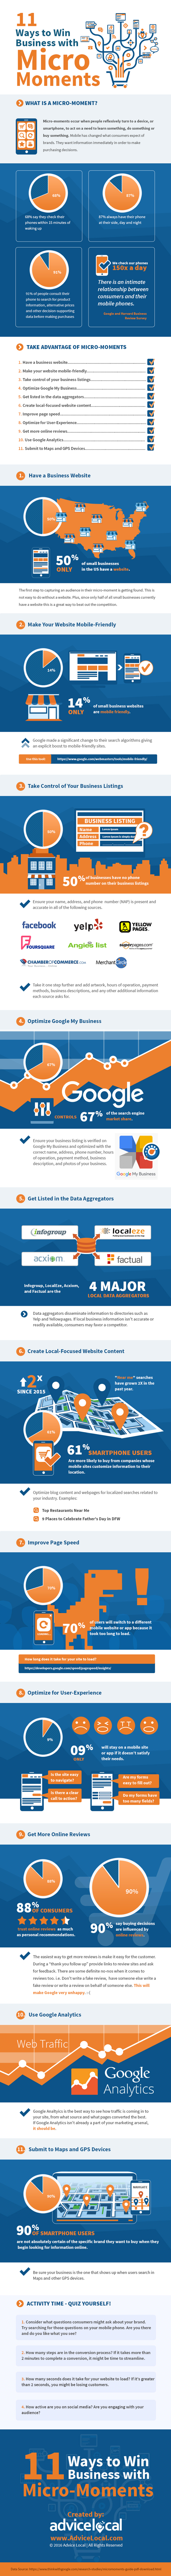 Micro-Moments Infographic by Bernadette Coleman, #QueenofLocalSEO